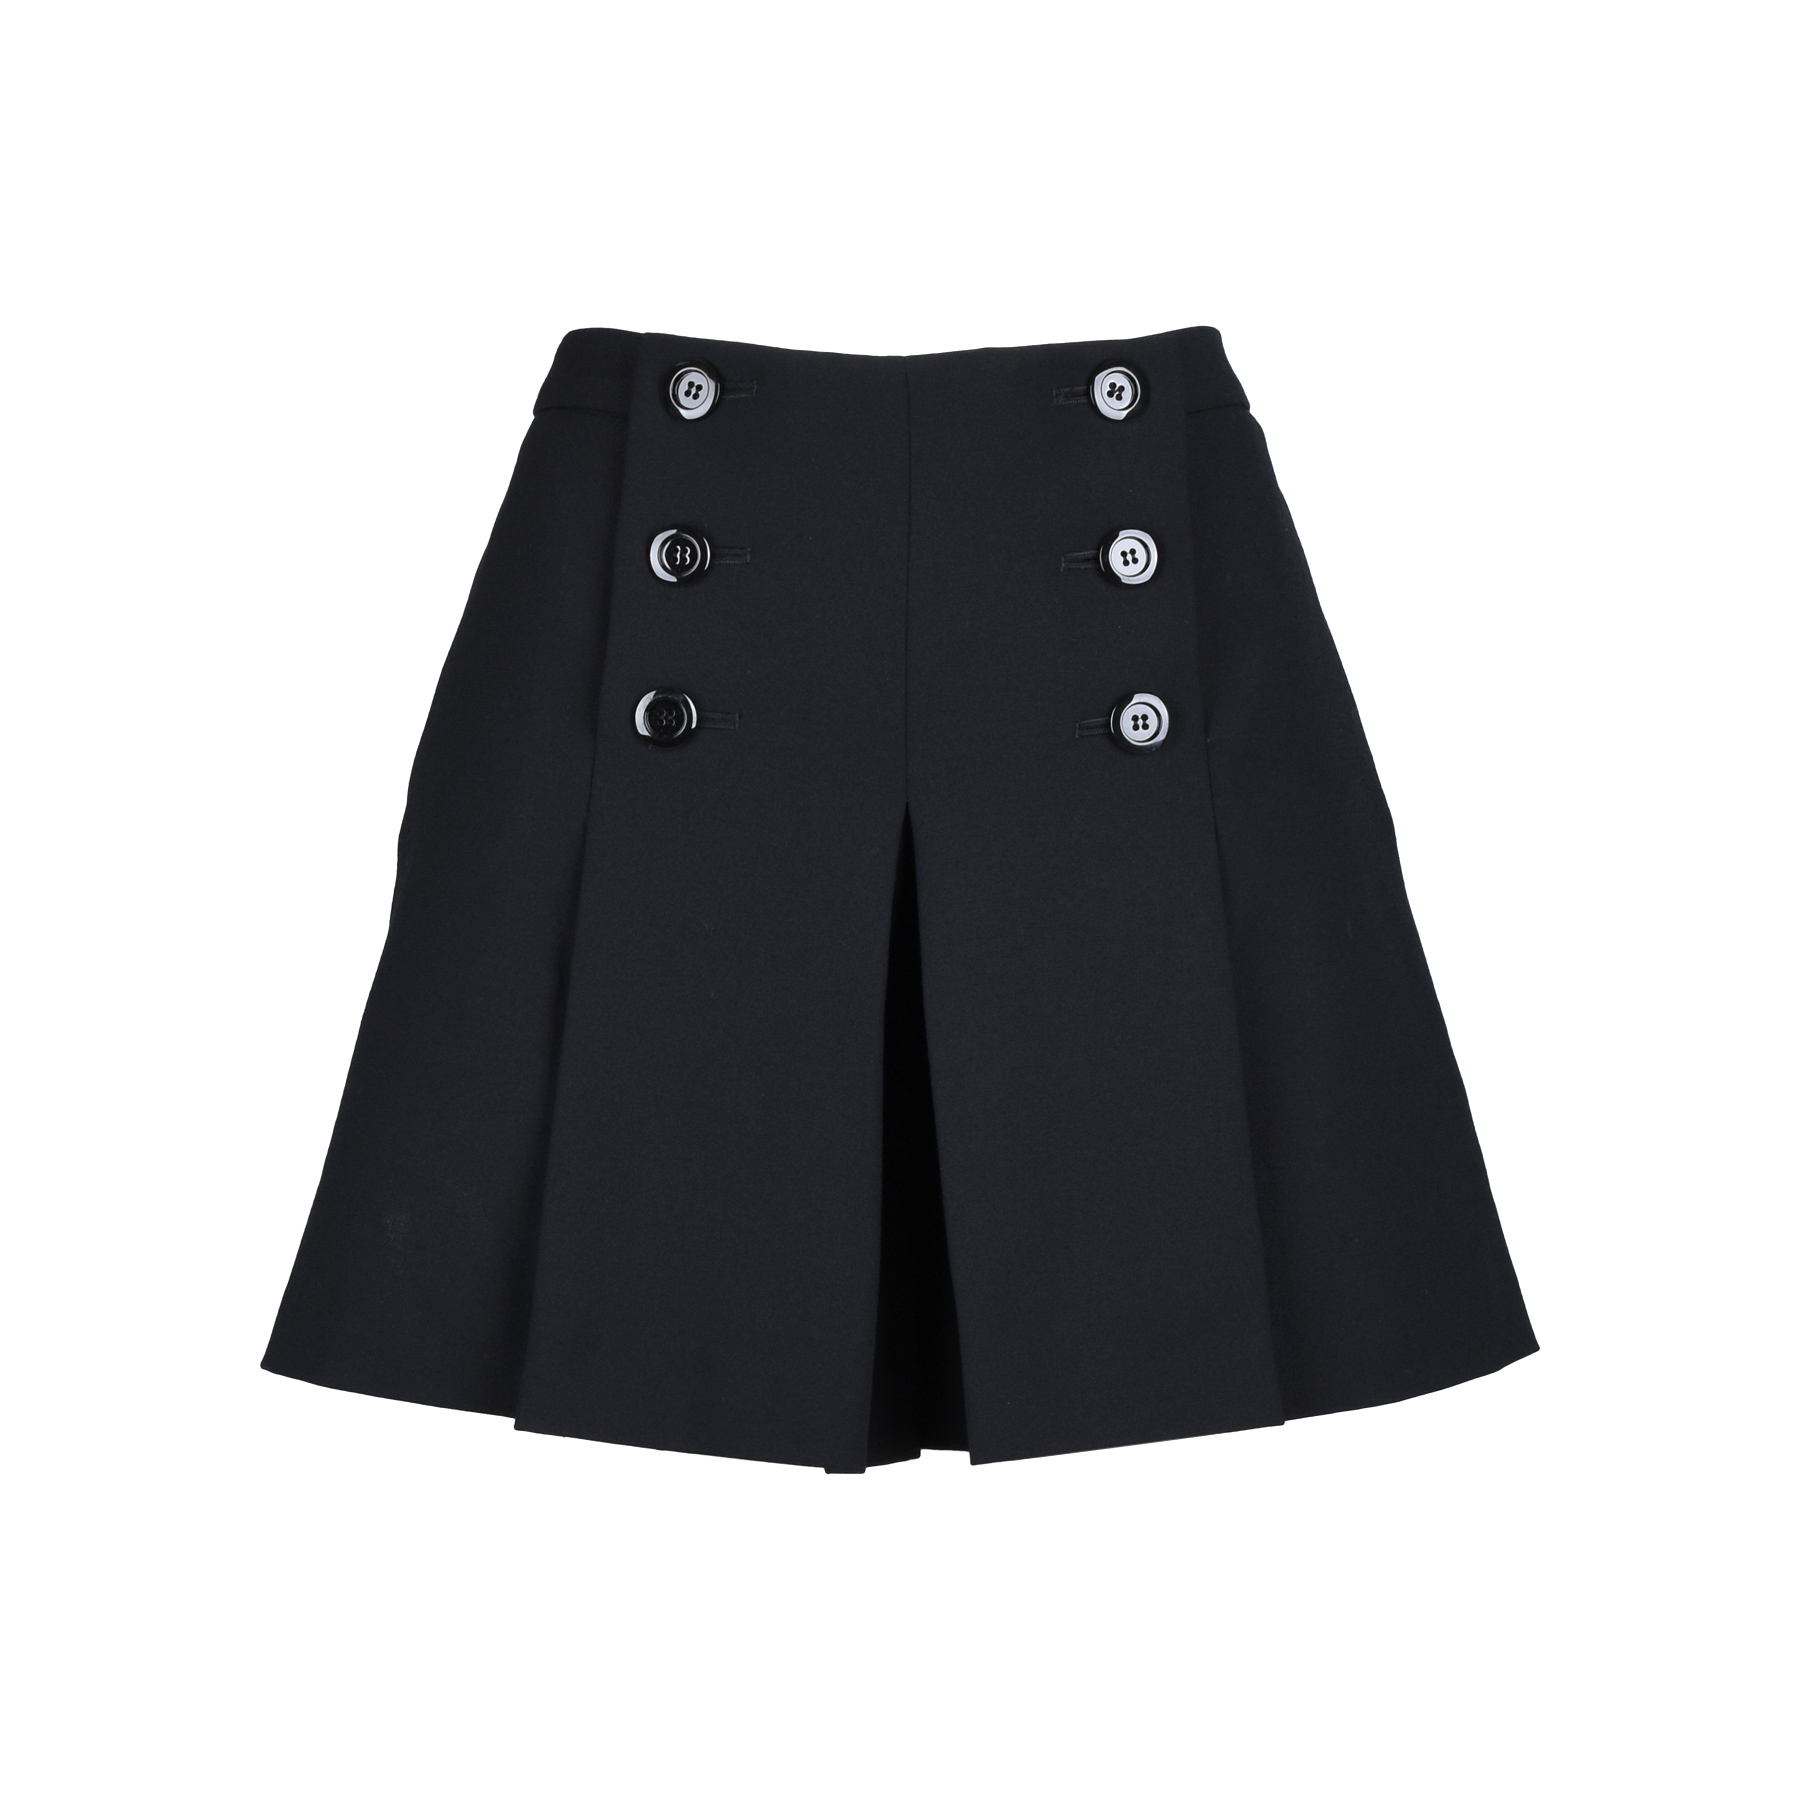 Authentic Hand Red Valentino Sailor Shorts Pss-200